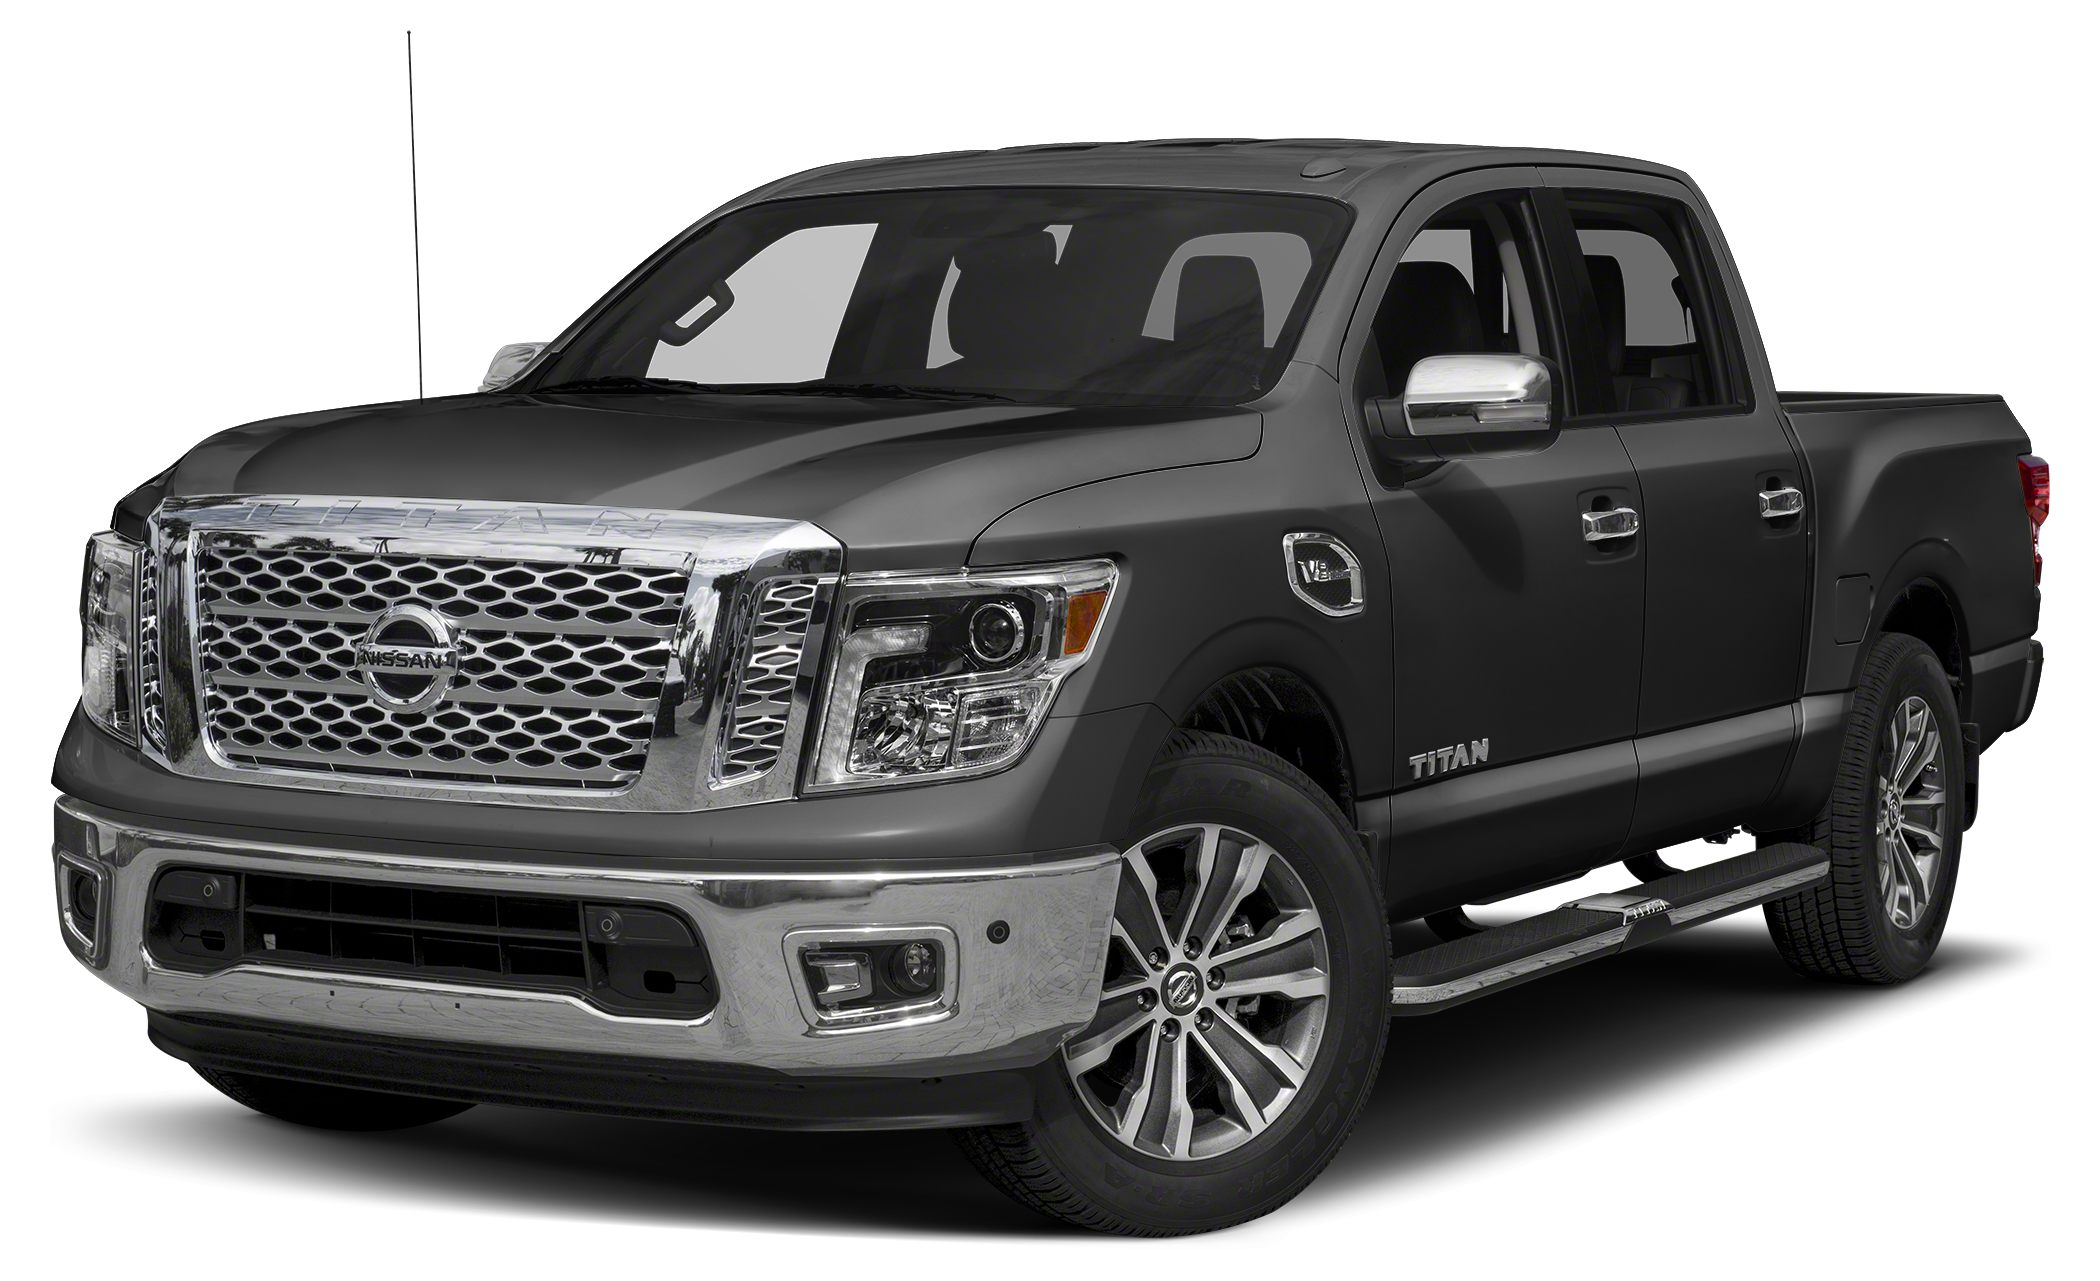 2017 Nissan Titan SL This 2017 Nissan Titan SL will sell fast This Titan has many valuable option